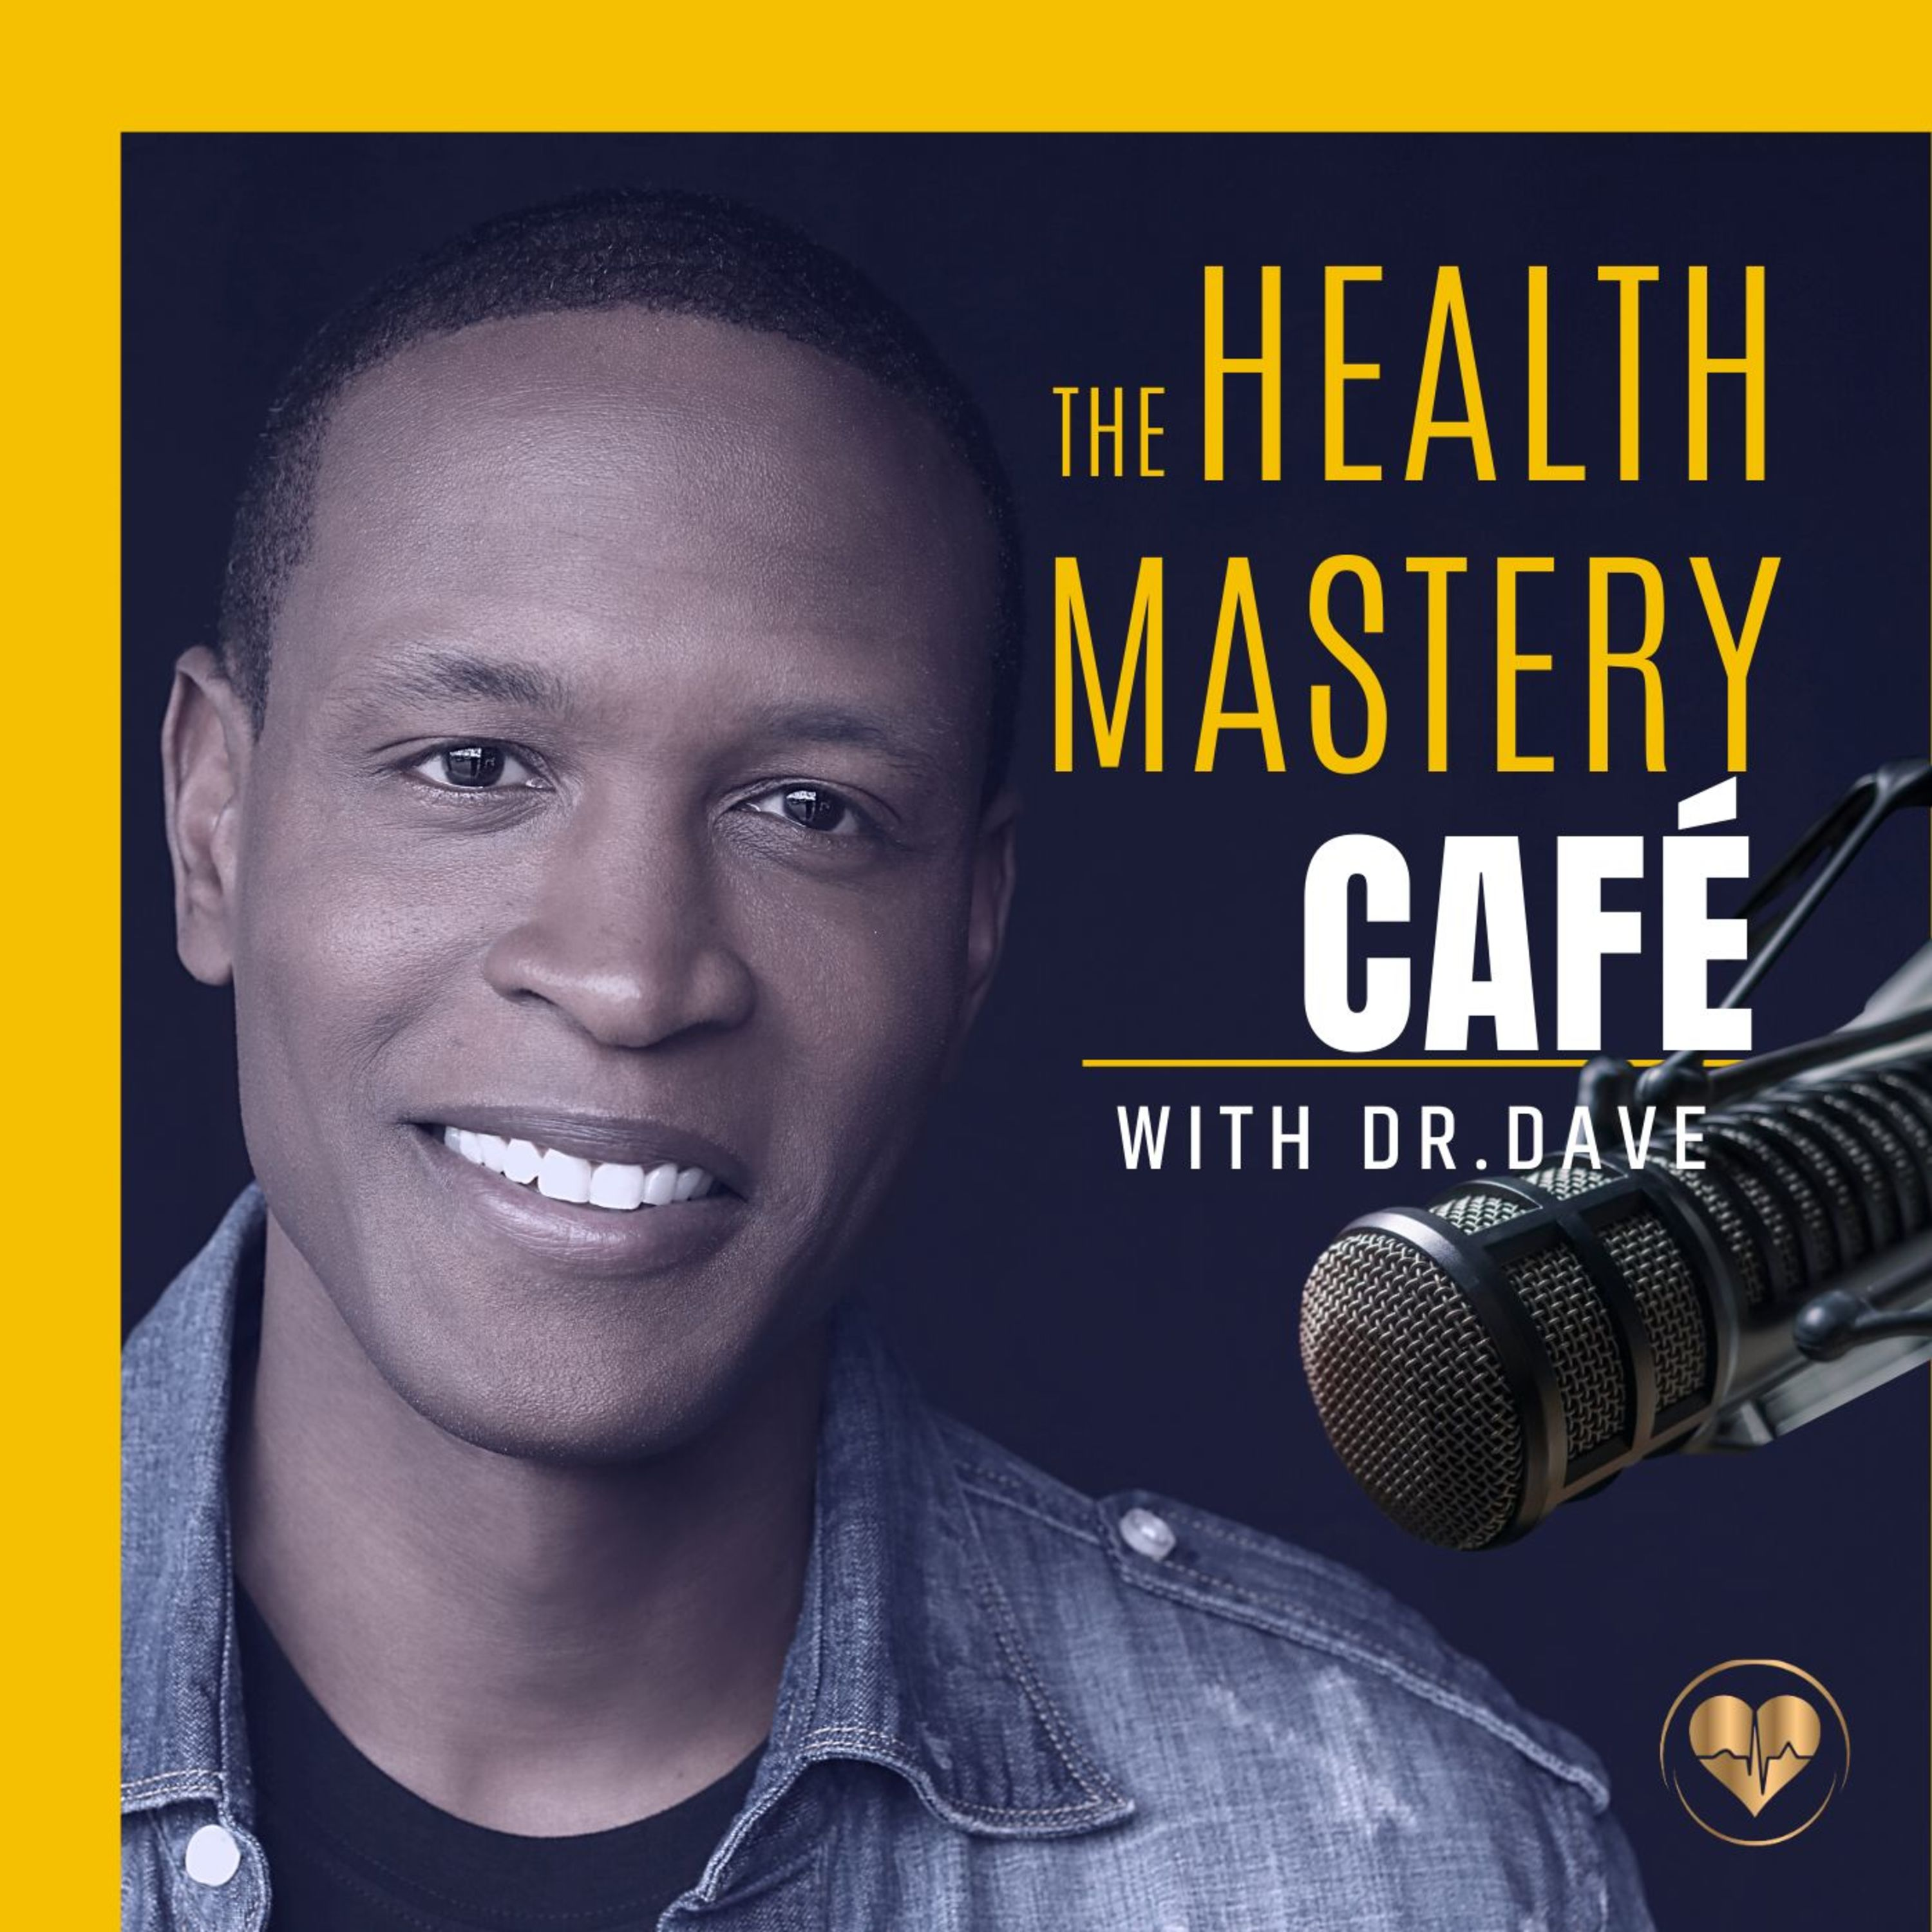 <![CDATA[The Health Mastery Café with Dr. Dave]]>